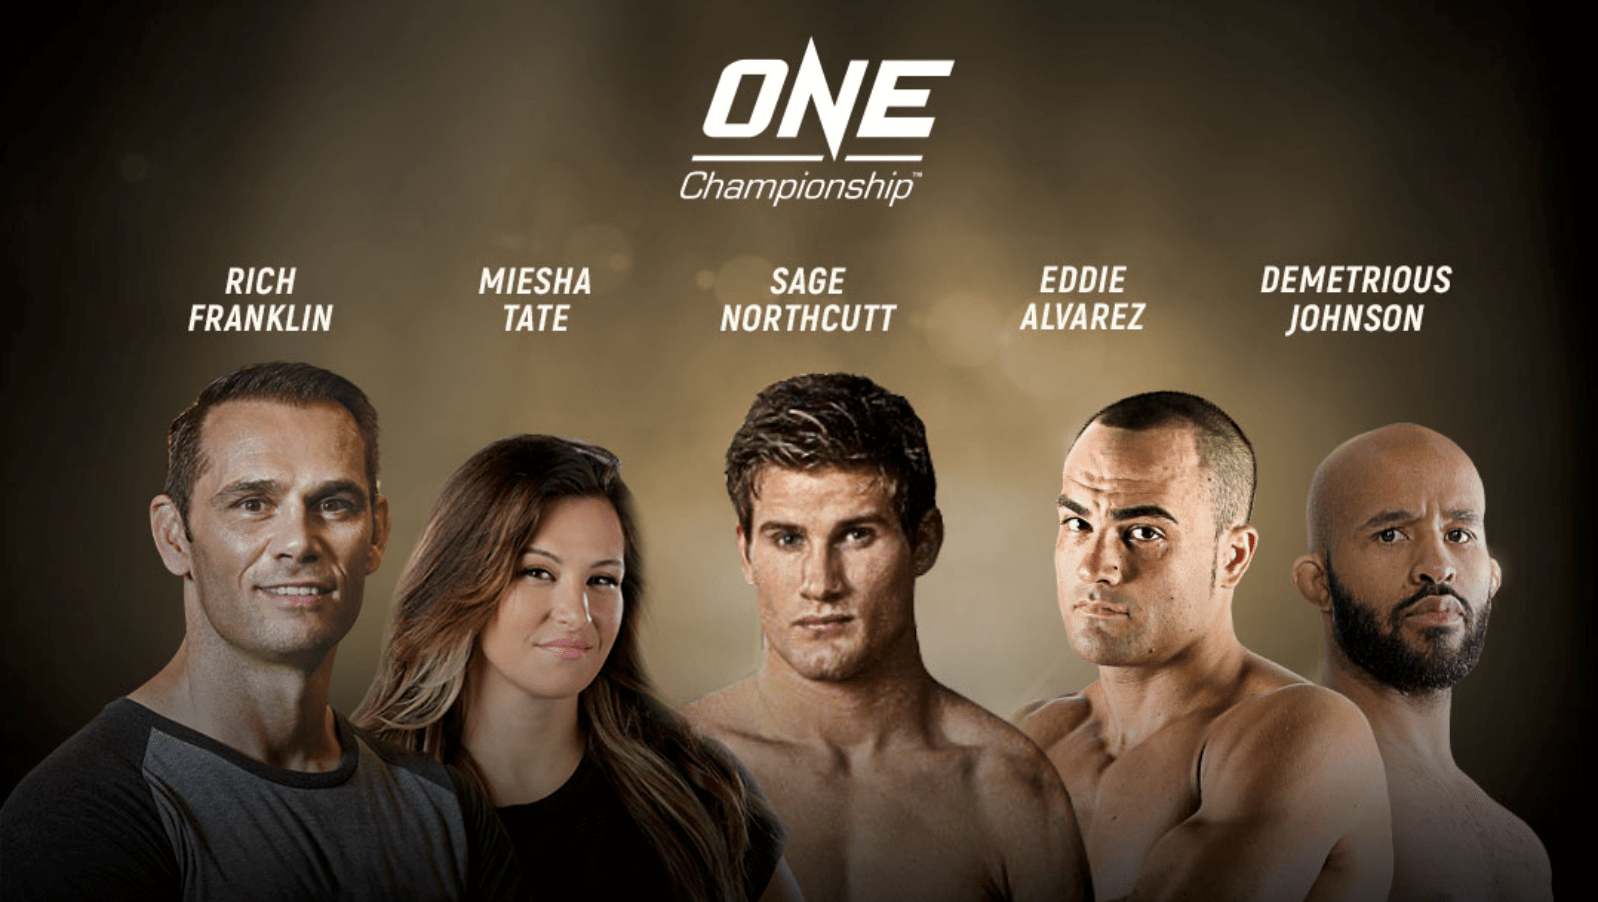 Rich Franklin And Miesha Tate To Join ONE US Tour